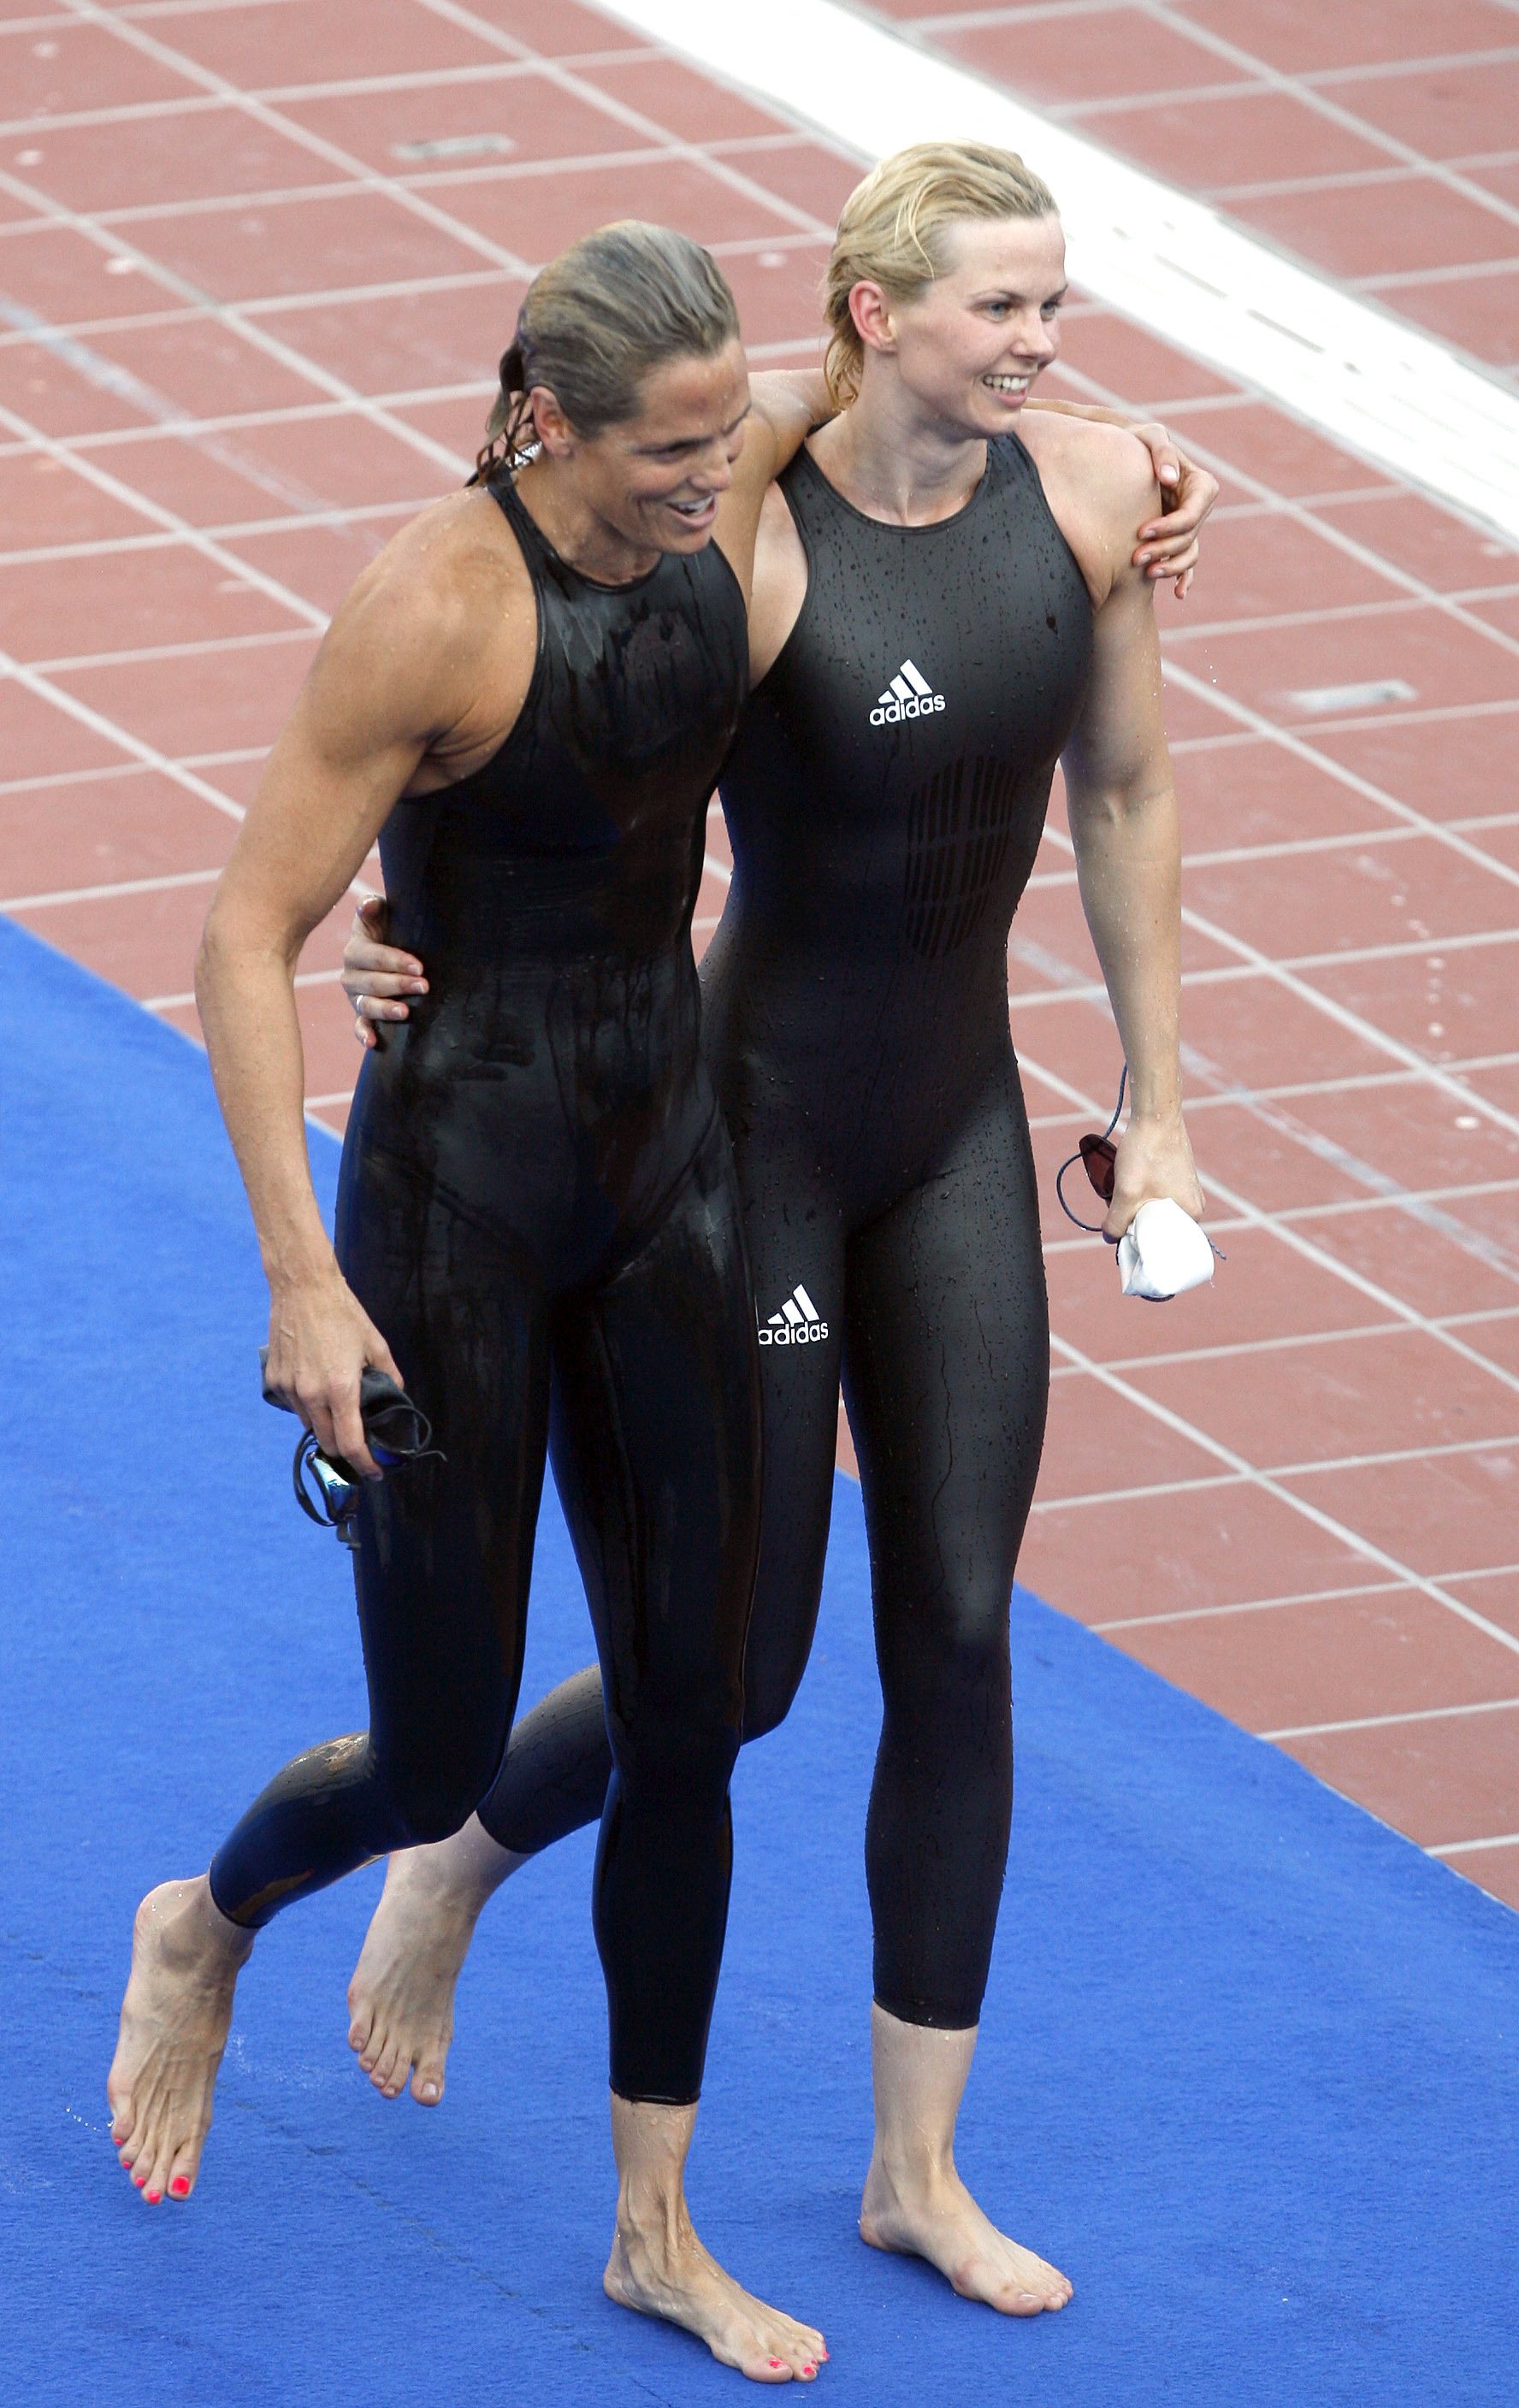 FILE - Germany's Britta Steffen, right, walks off with Dara Torres of the United States after winning a women's 50-meter freestyle final at the FINA Swimming World Championships in Rome, Aug. 2, 2009. Swimsuit design wars culminated with a ludicrous ...